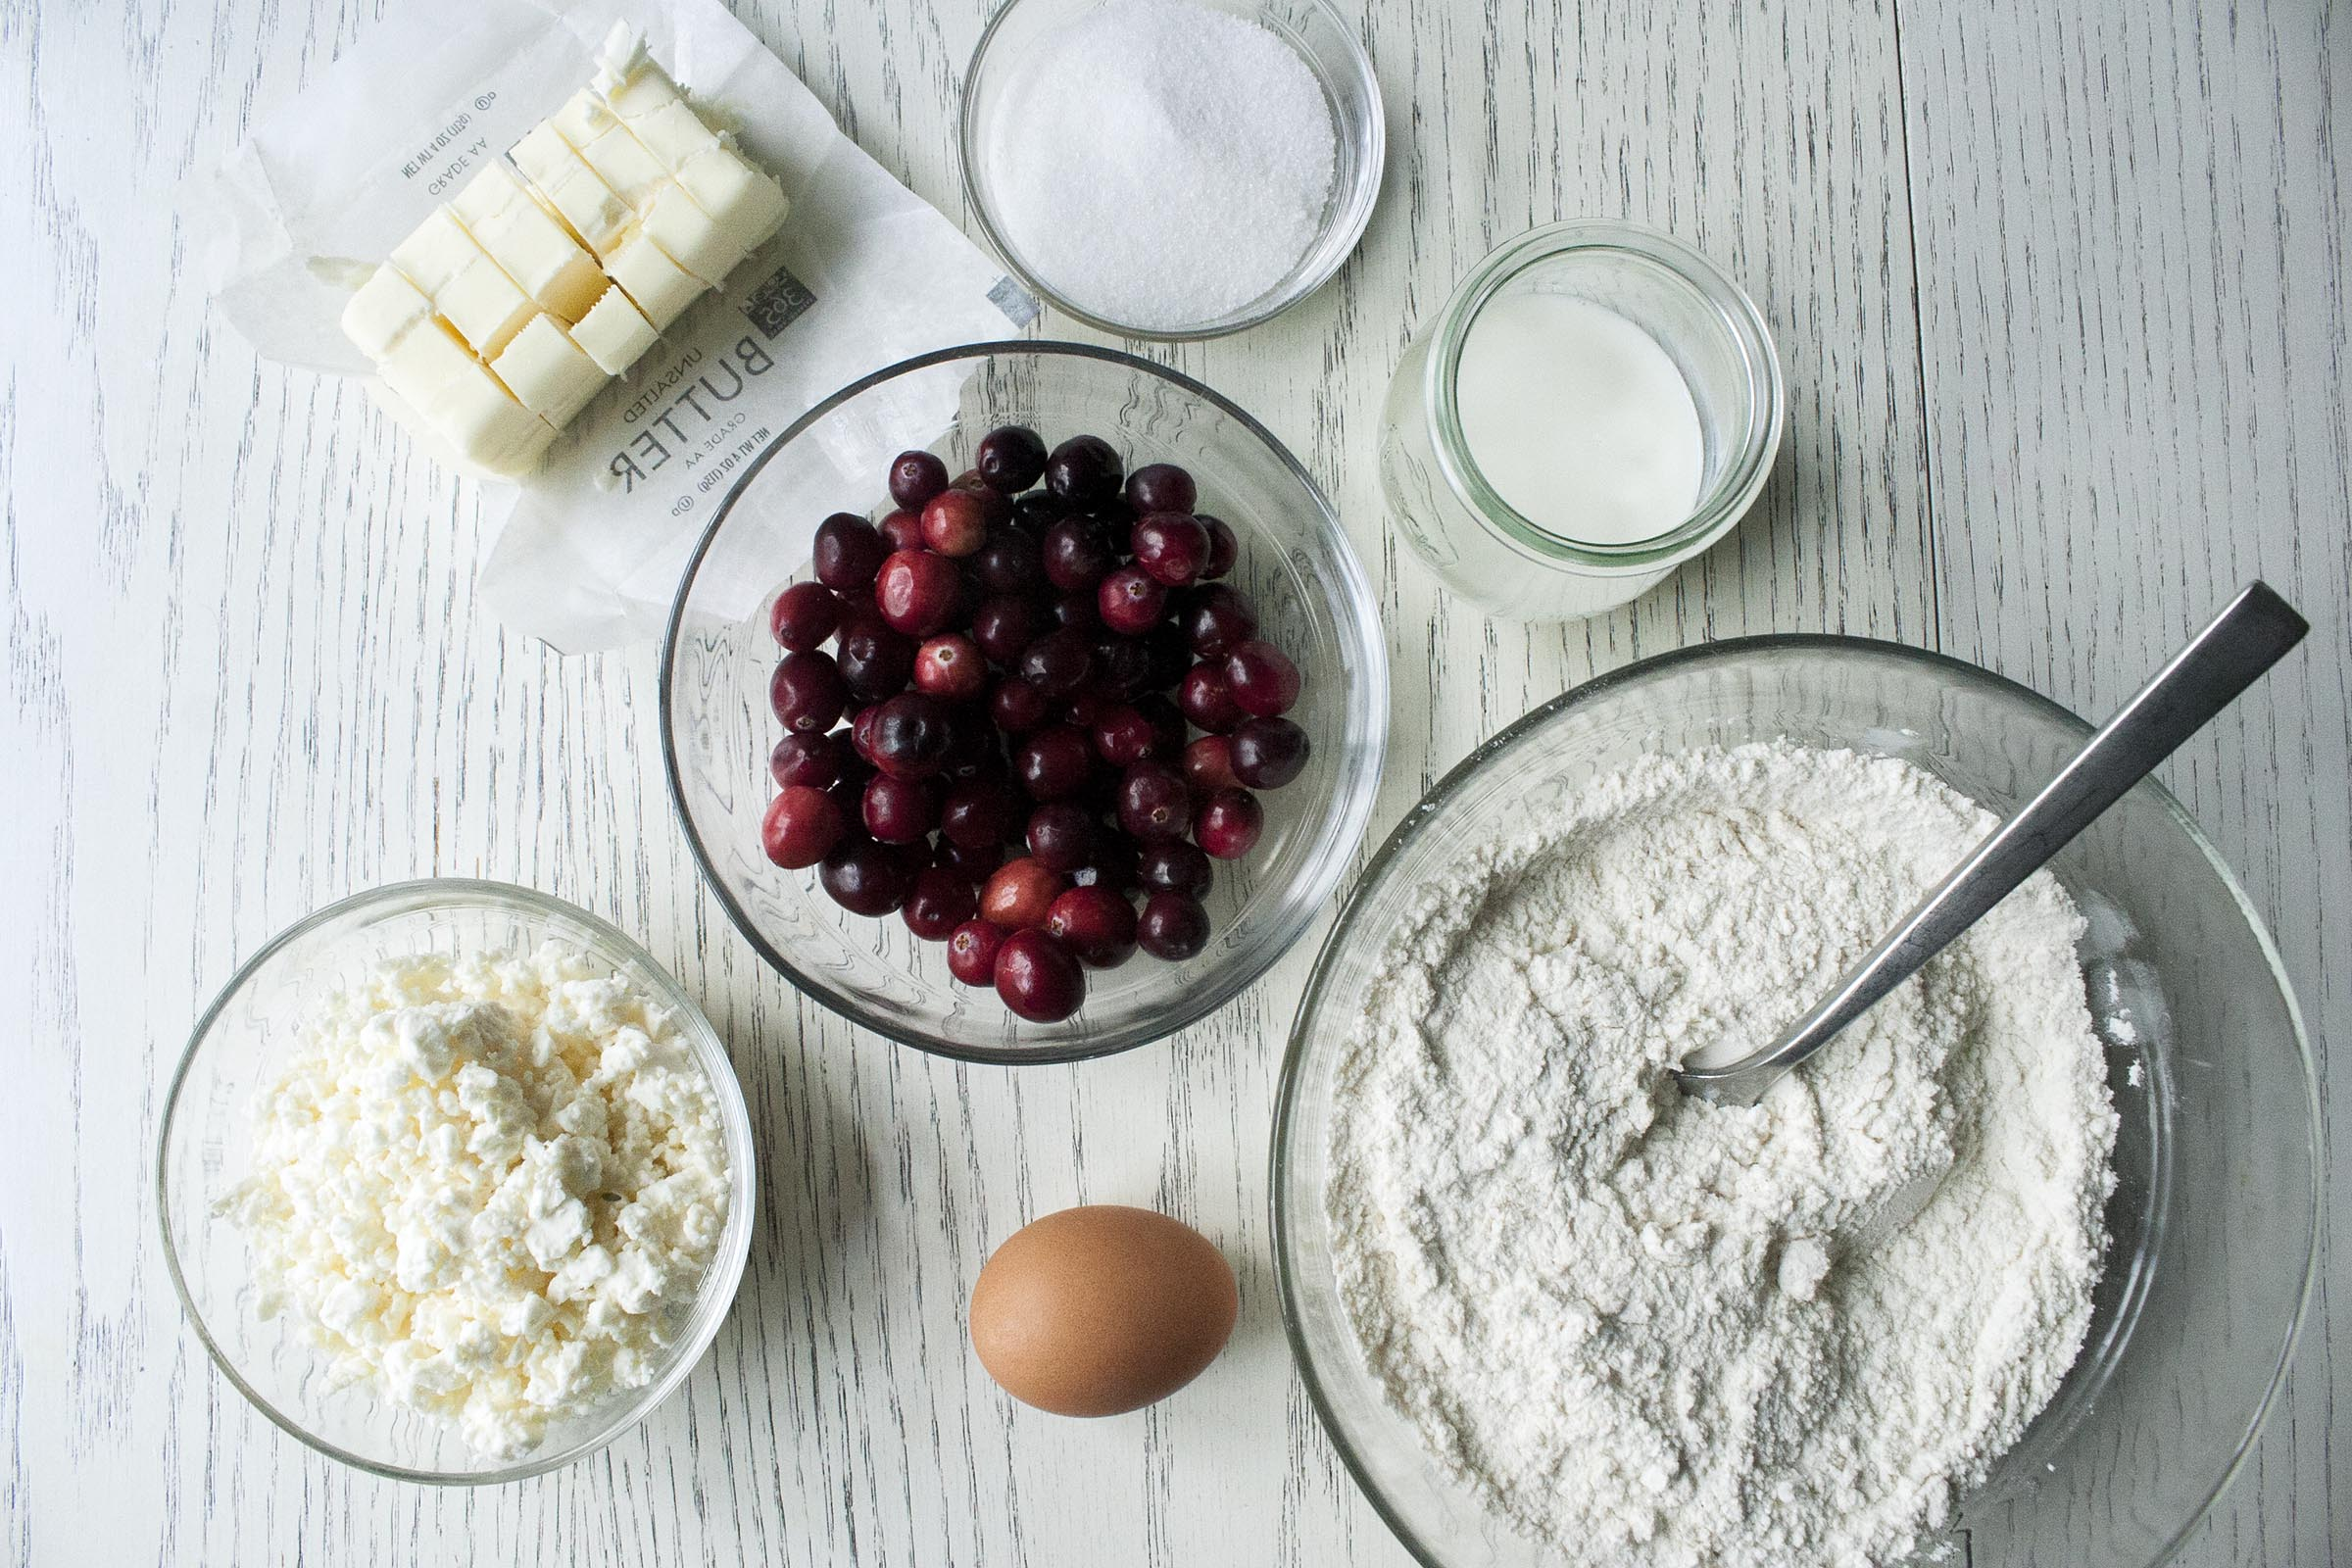 Ingredients for tender, tart and cheesy Cranberry Feta Scones. www.lifeaswecookit.com